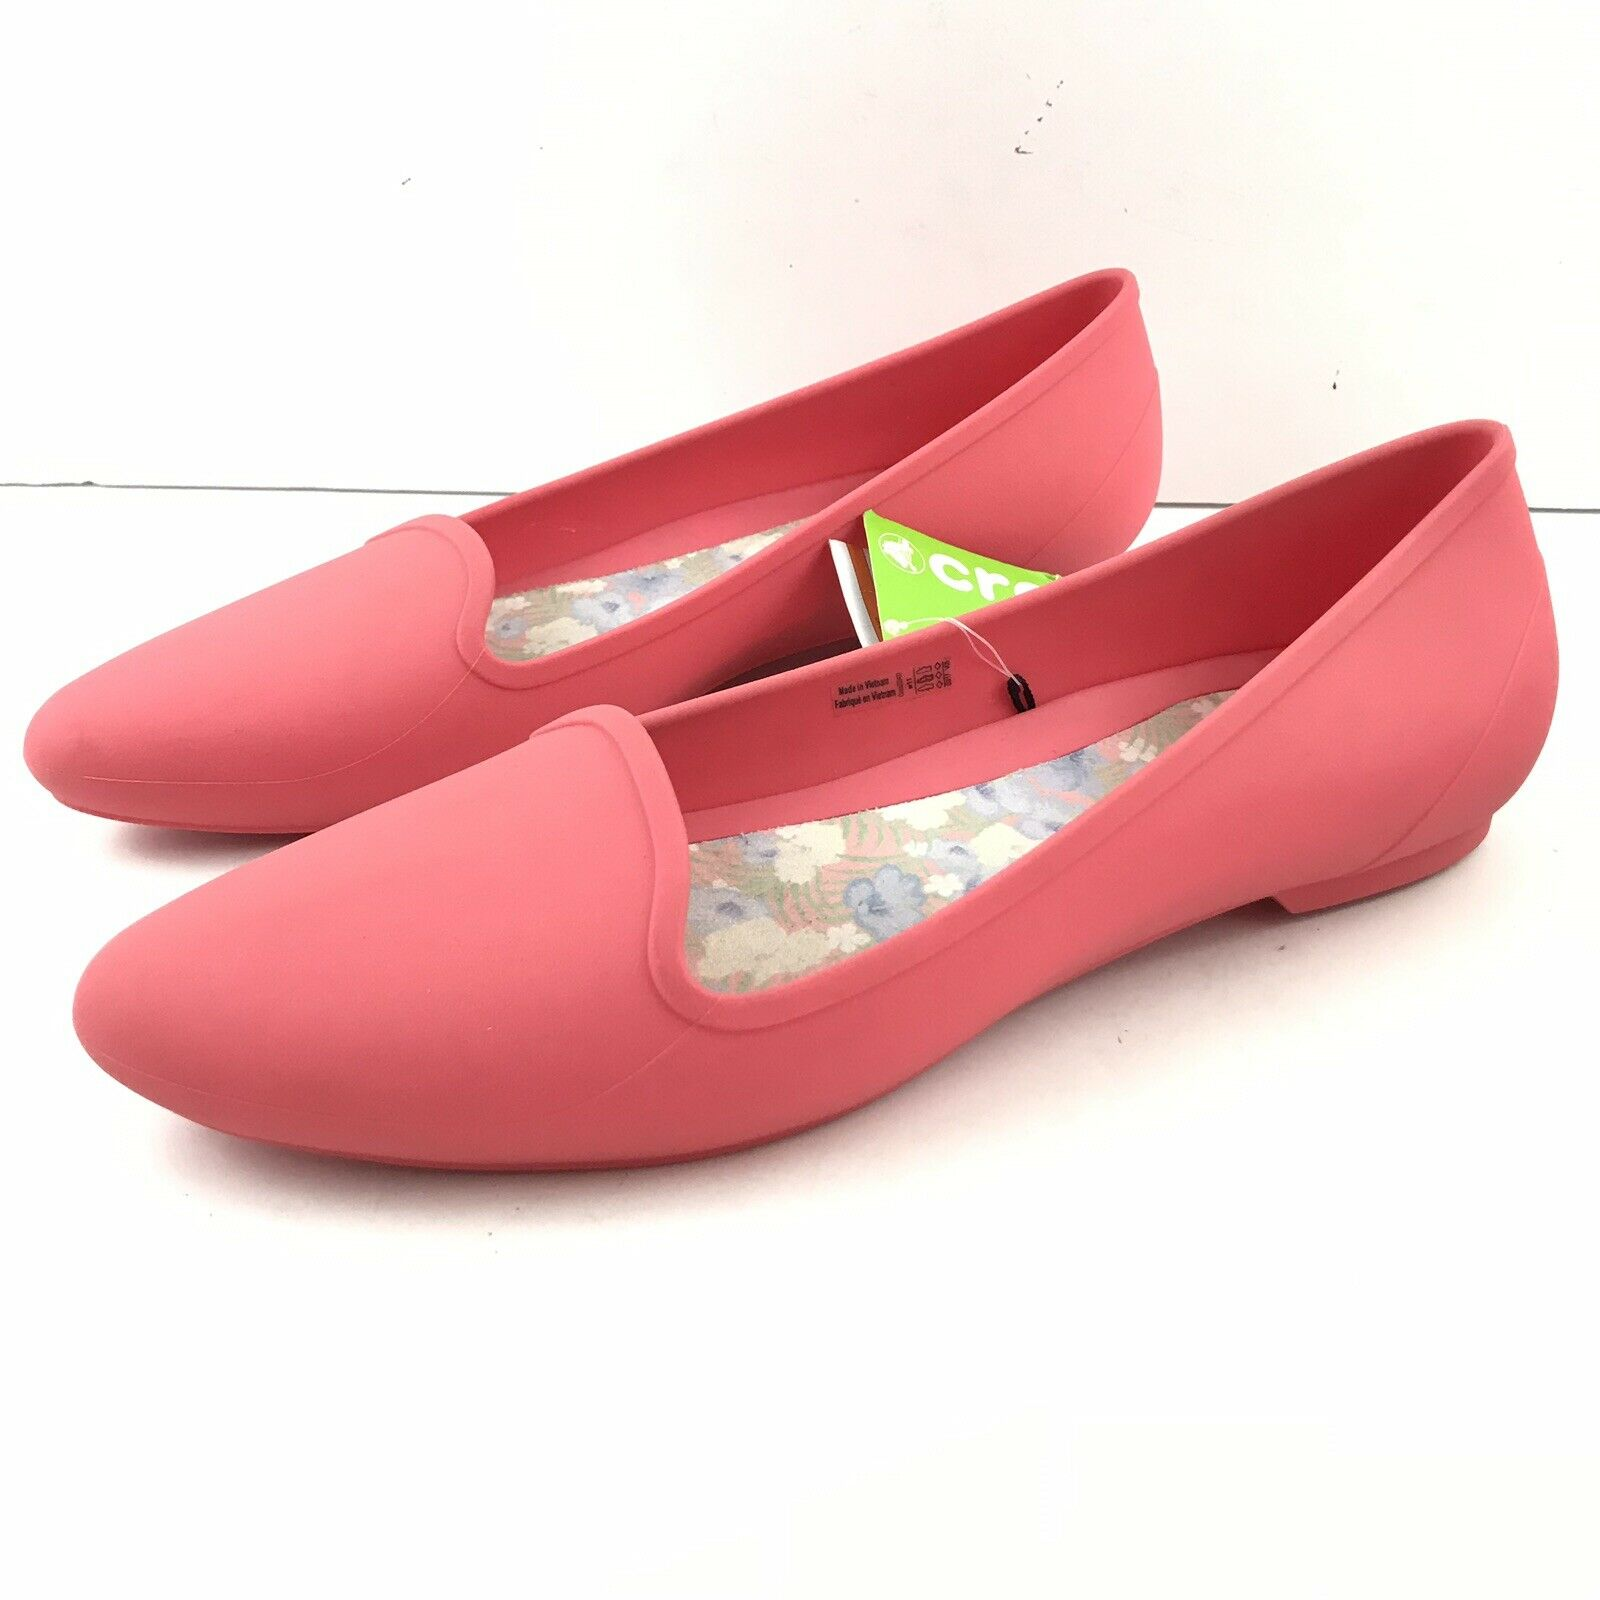 Crocs Women 11 Eve Flat Coral Slip On Loafer Almond Toe Comfort Casual New